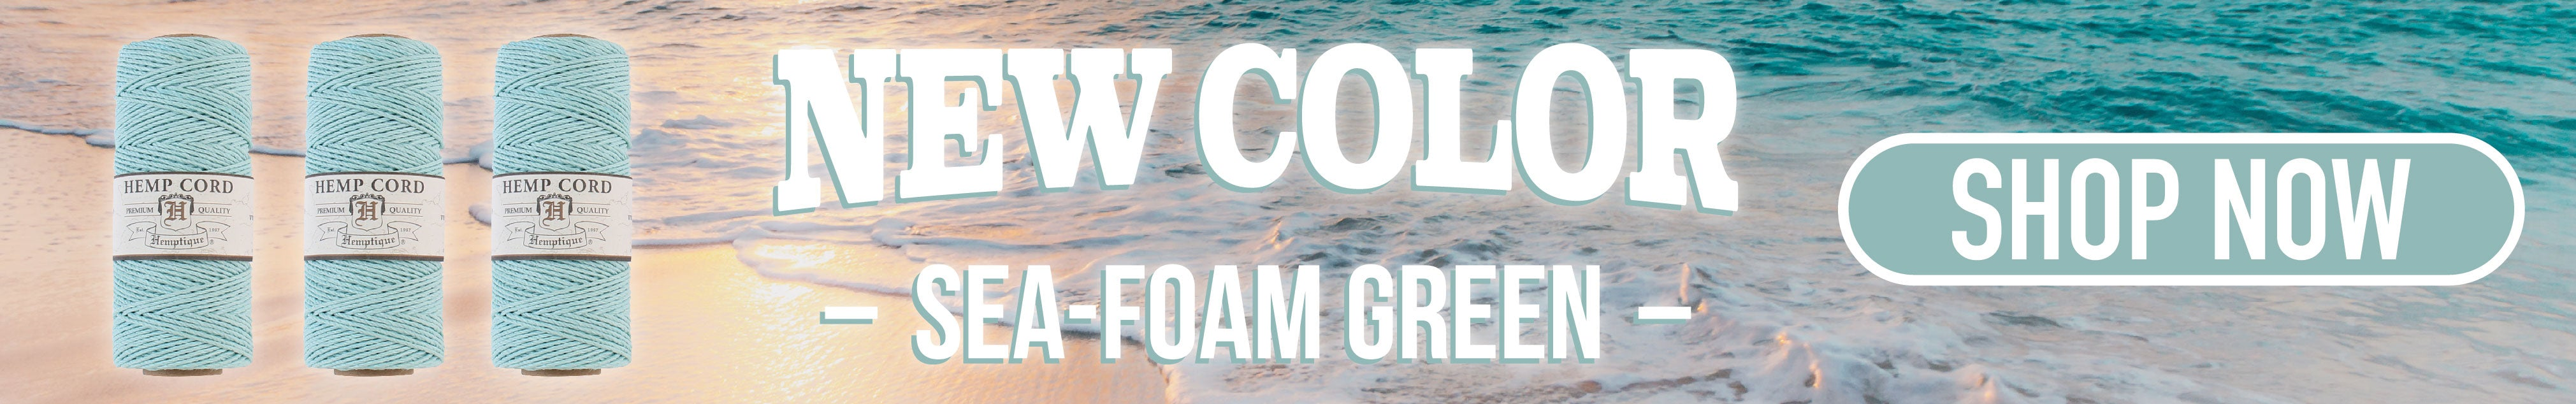 sea-foam-green-banner